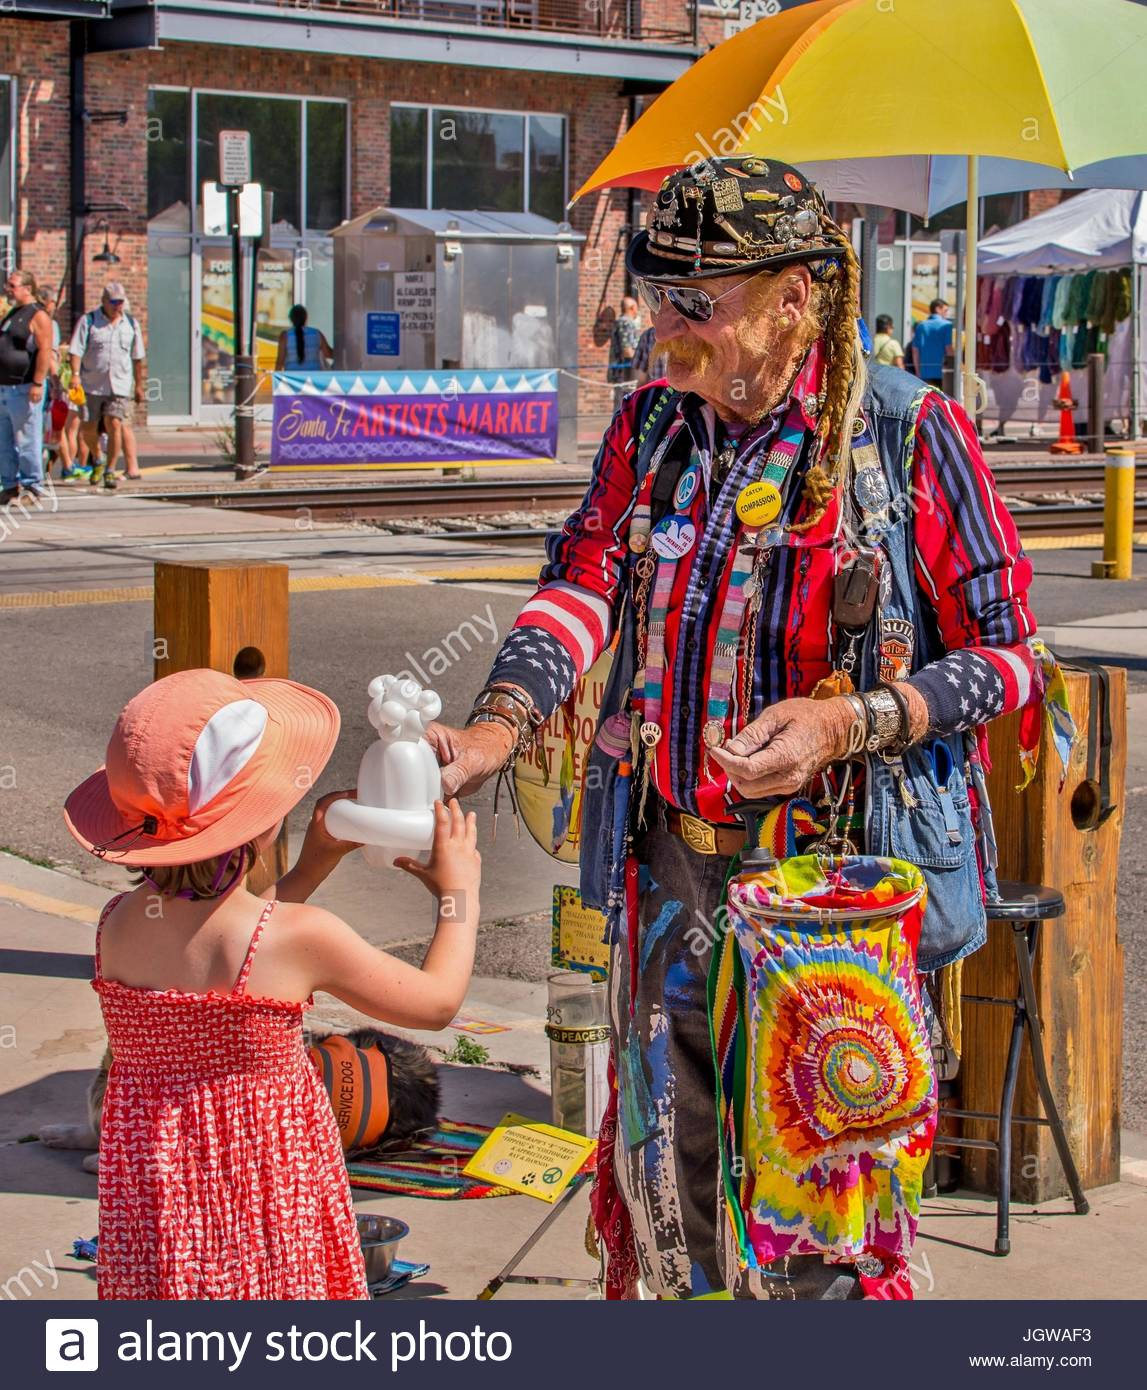 A balloon artist in colorful tie-dyed clothing makes an animal for a small girl in a hat at the Farmers' Market - Stock Image